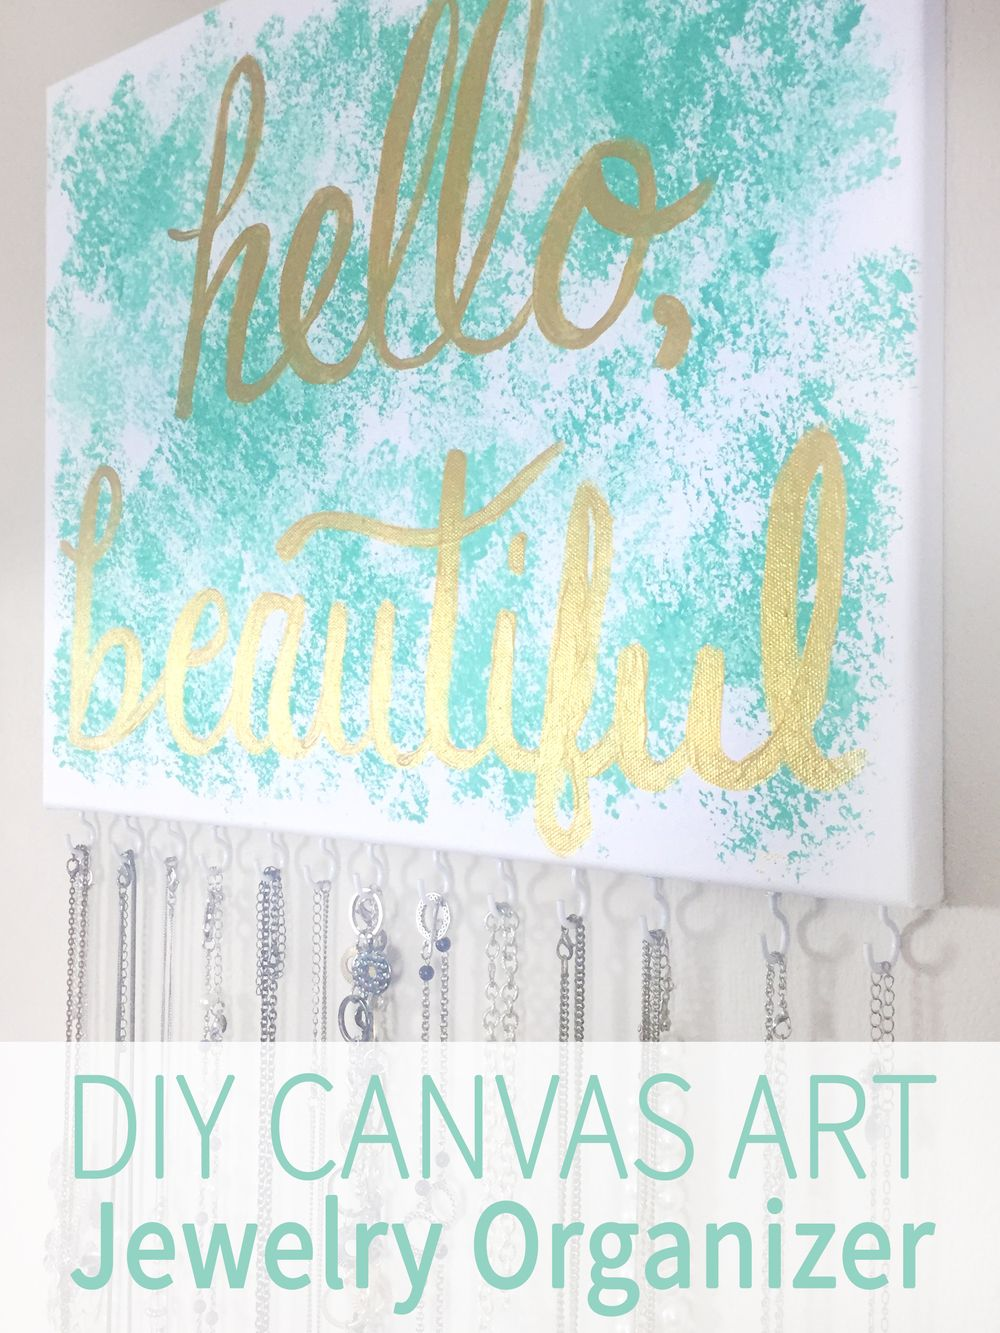 Jewelry Organizer Diy Diy Canvas Jewelry Organizer Art Giveaway Diy Canvas Art Diy